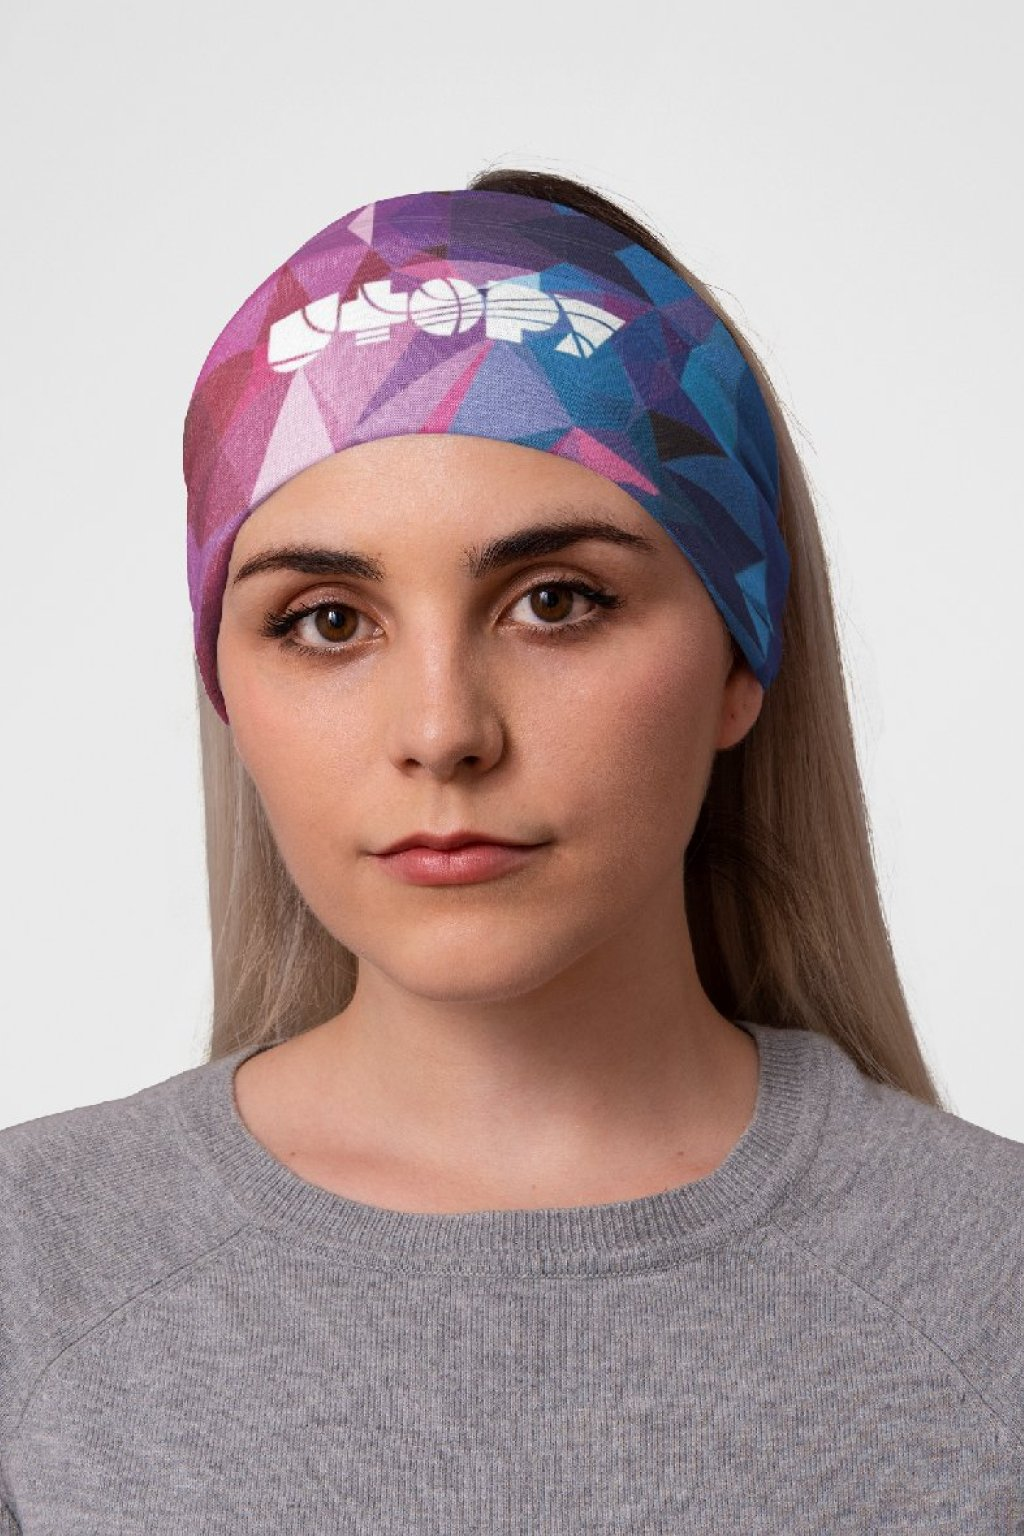 mockup of a woman at a studio with a tubular bandana on her head 36078 (8)